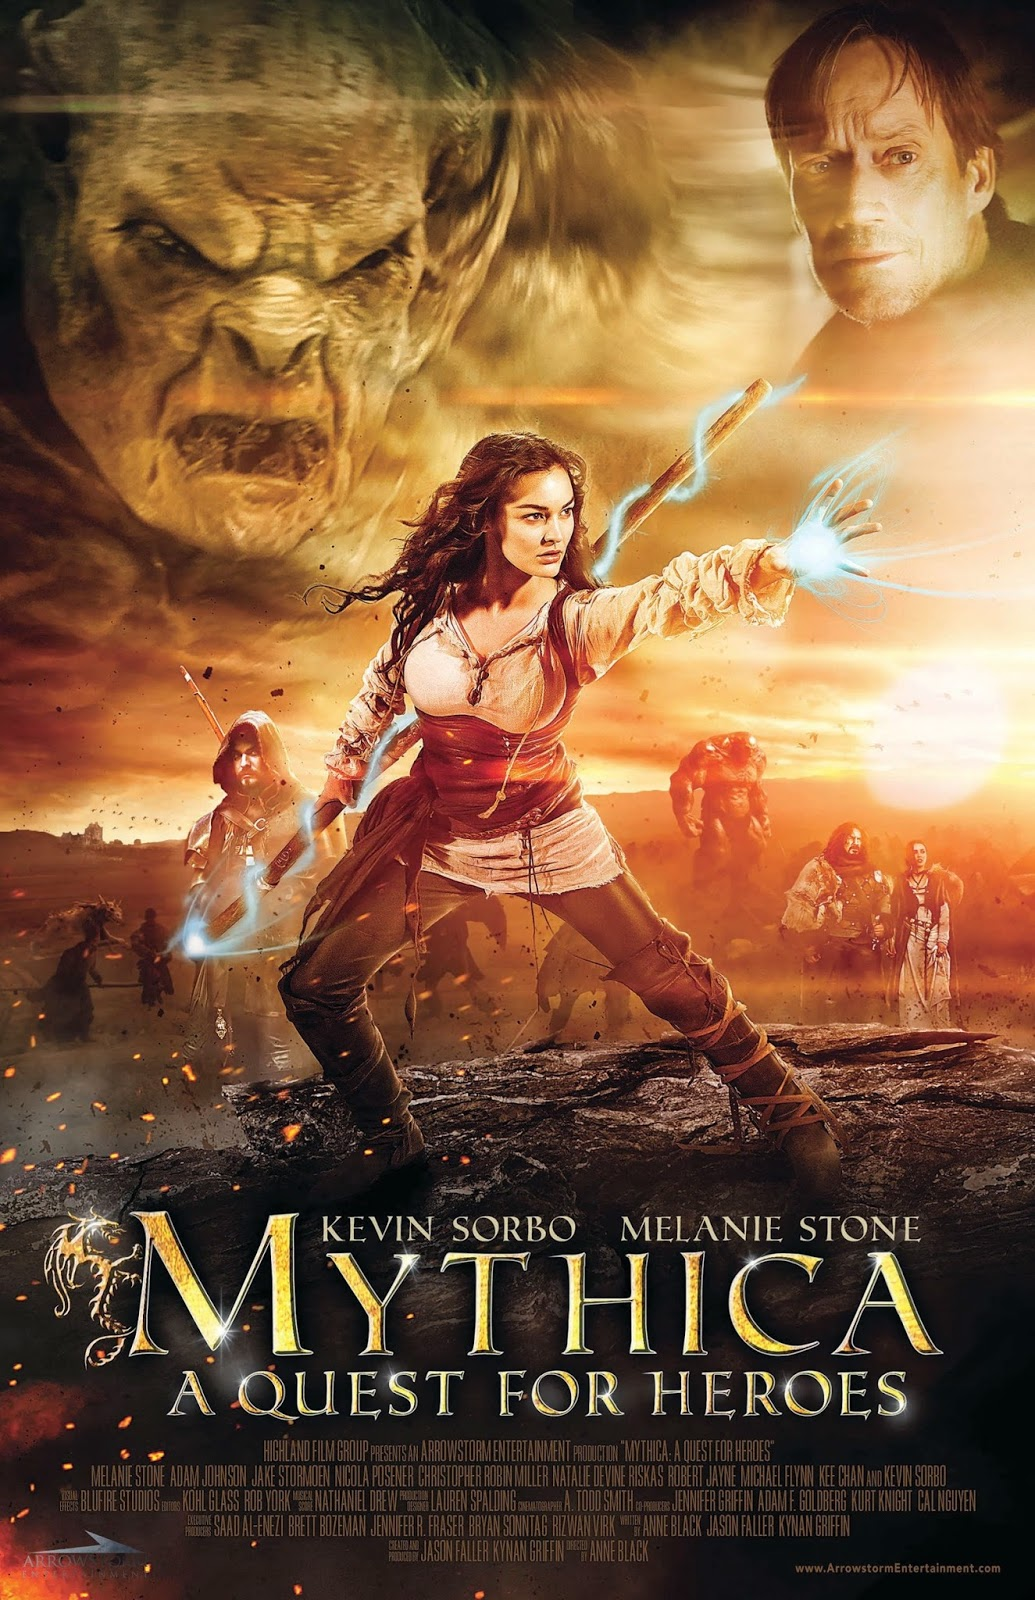 Mythica: A Quest for Heroes 2015 - Full (HD)